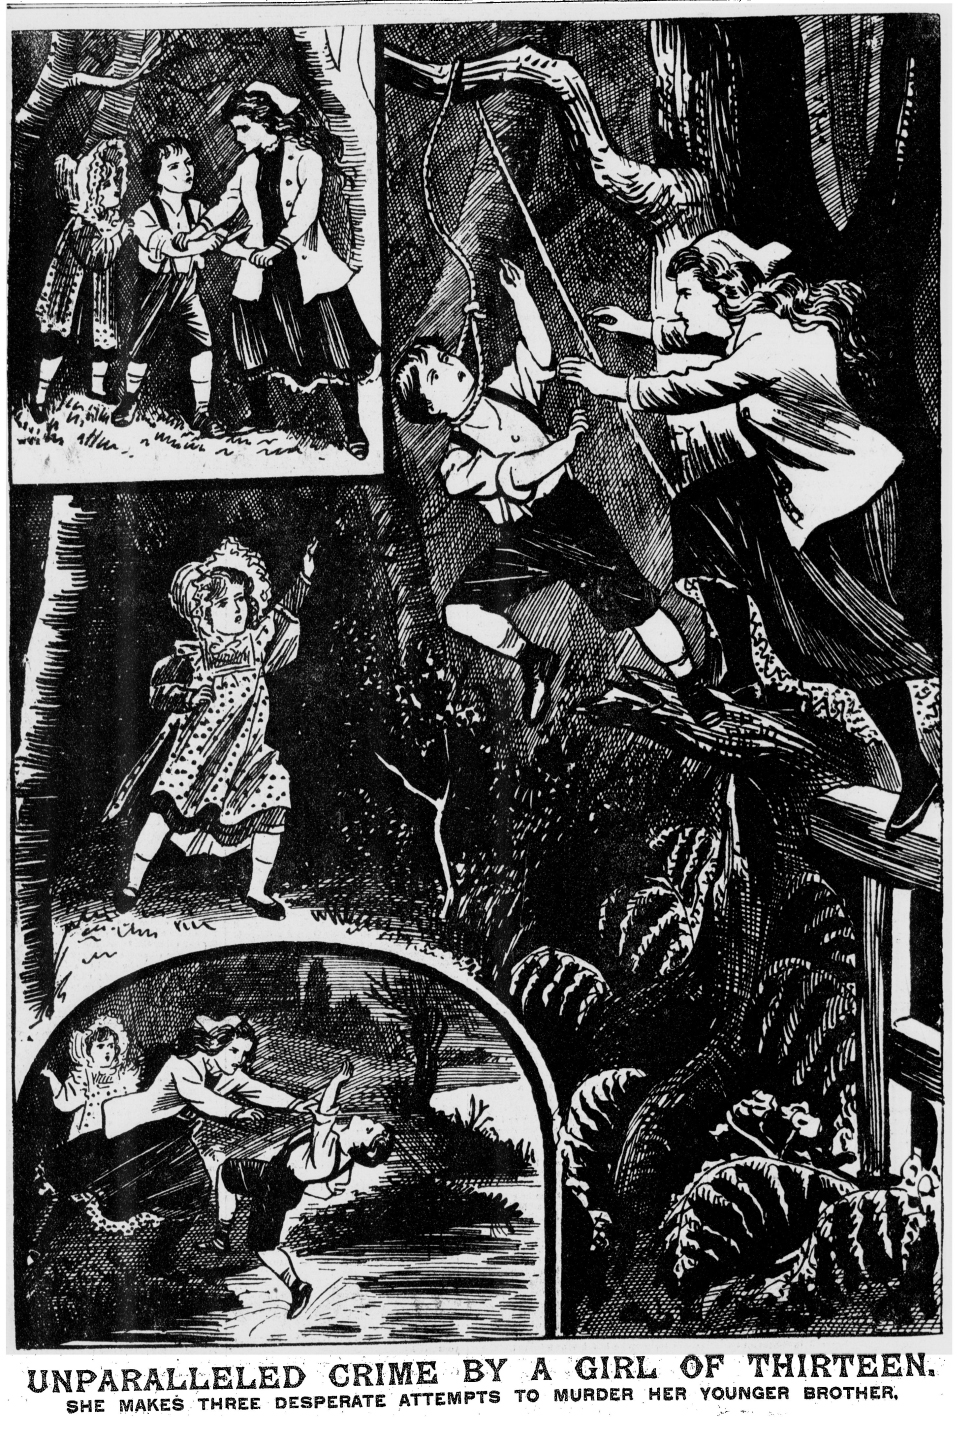 art of the beautiful-grotesque: Scenes of Crime: The ...